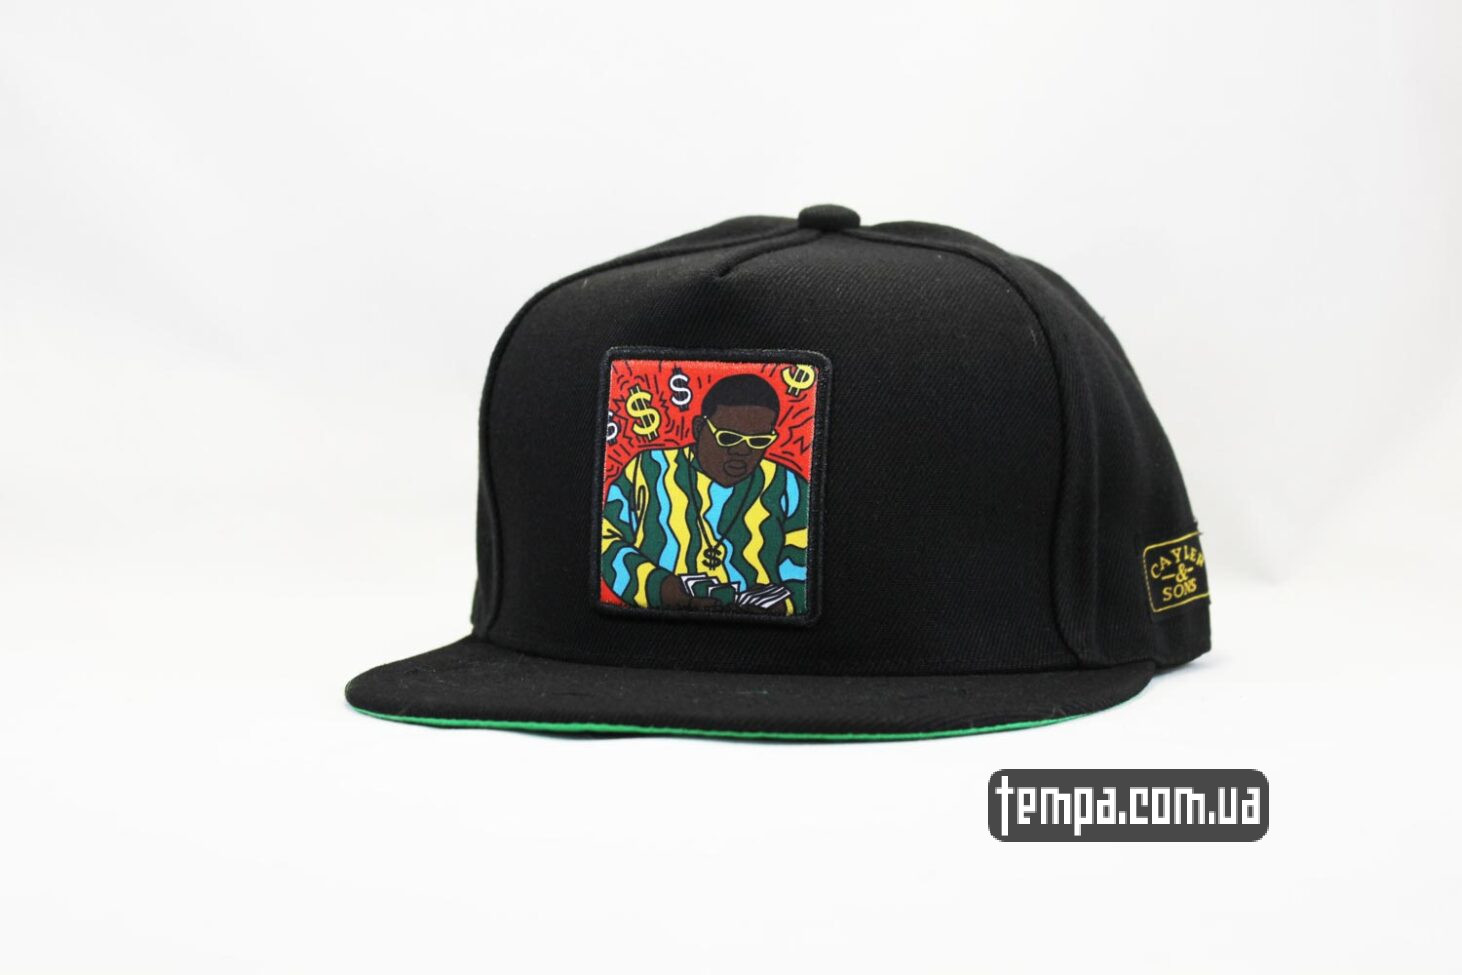 кепка snapback The Notorious B.I.G. Cayle and Sons деньги доллары